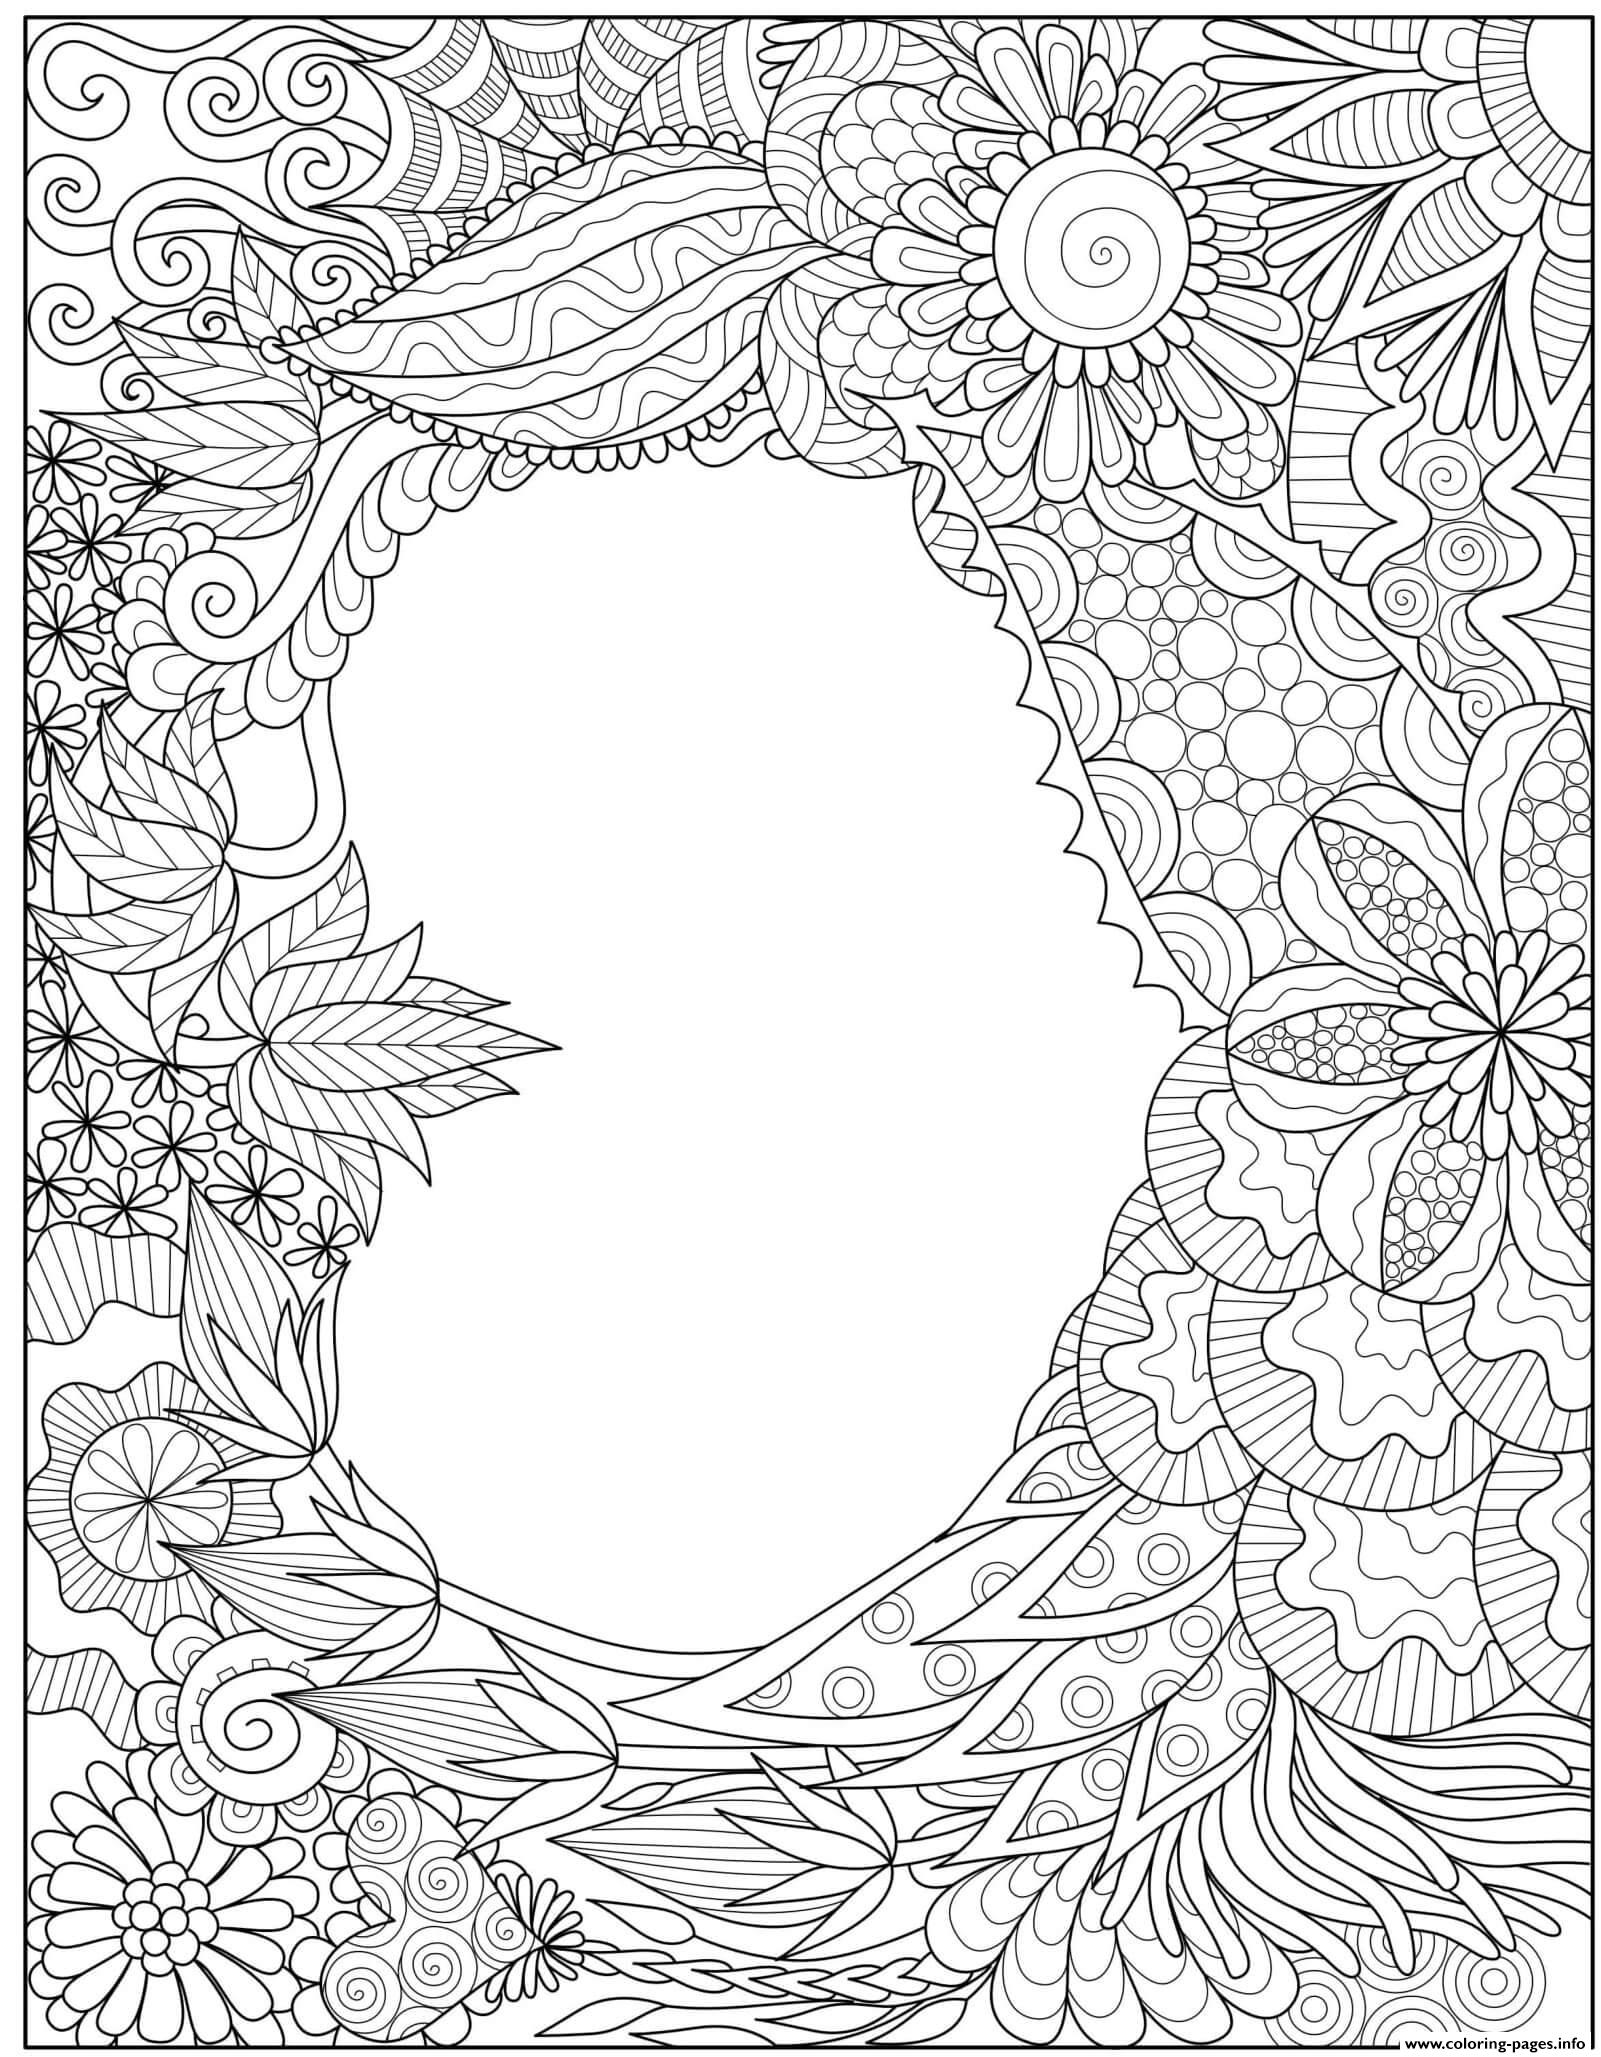 Mothers Day Heart Intricate Doodle Border Coloring Pages